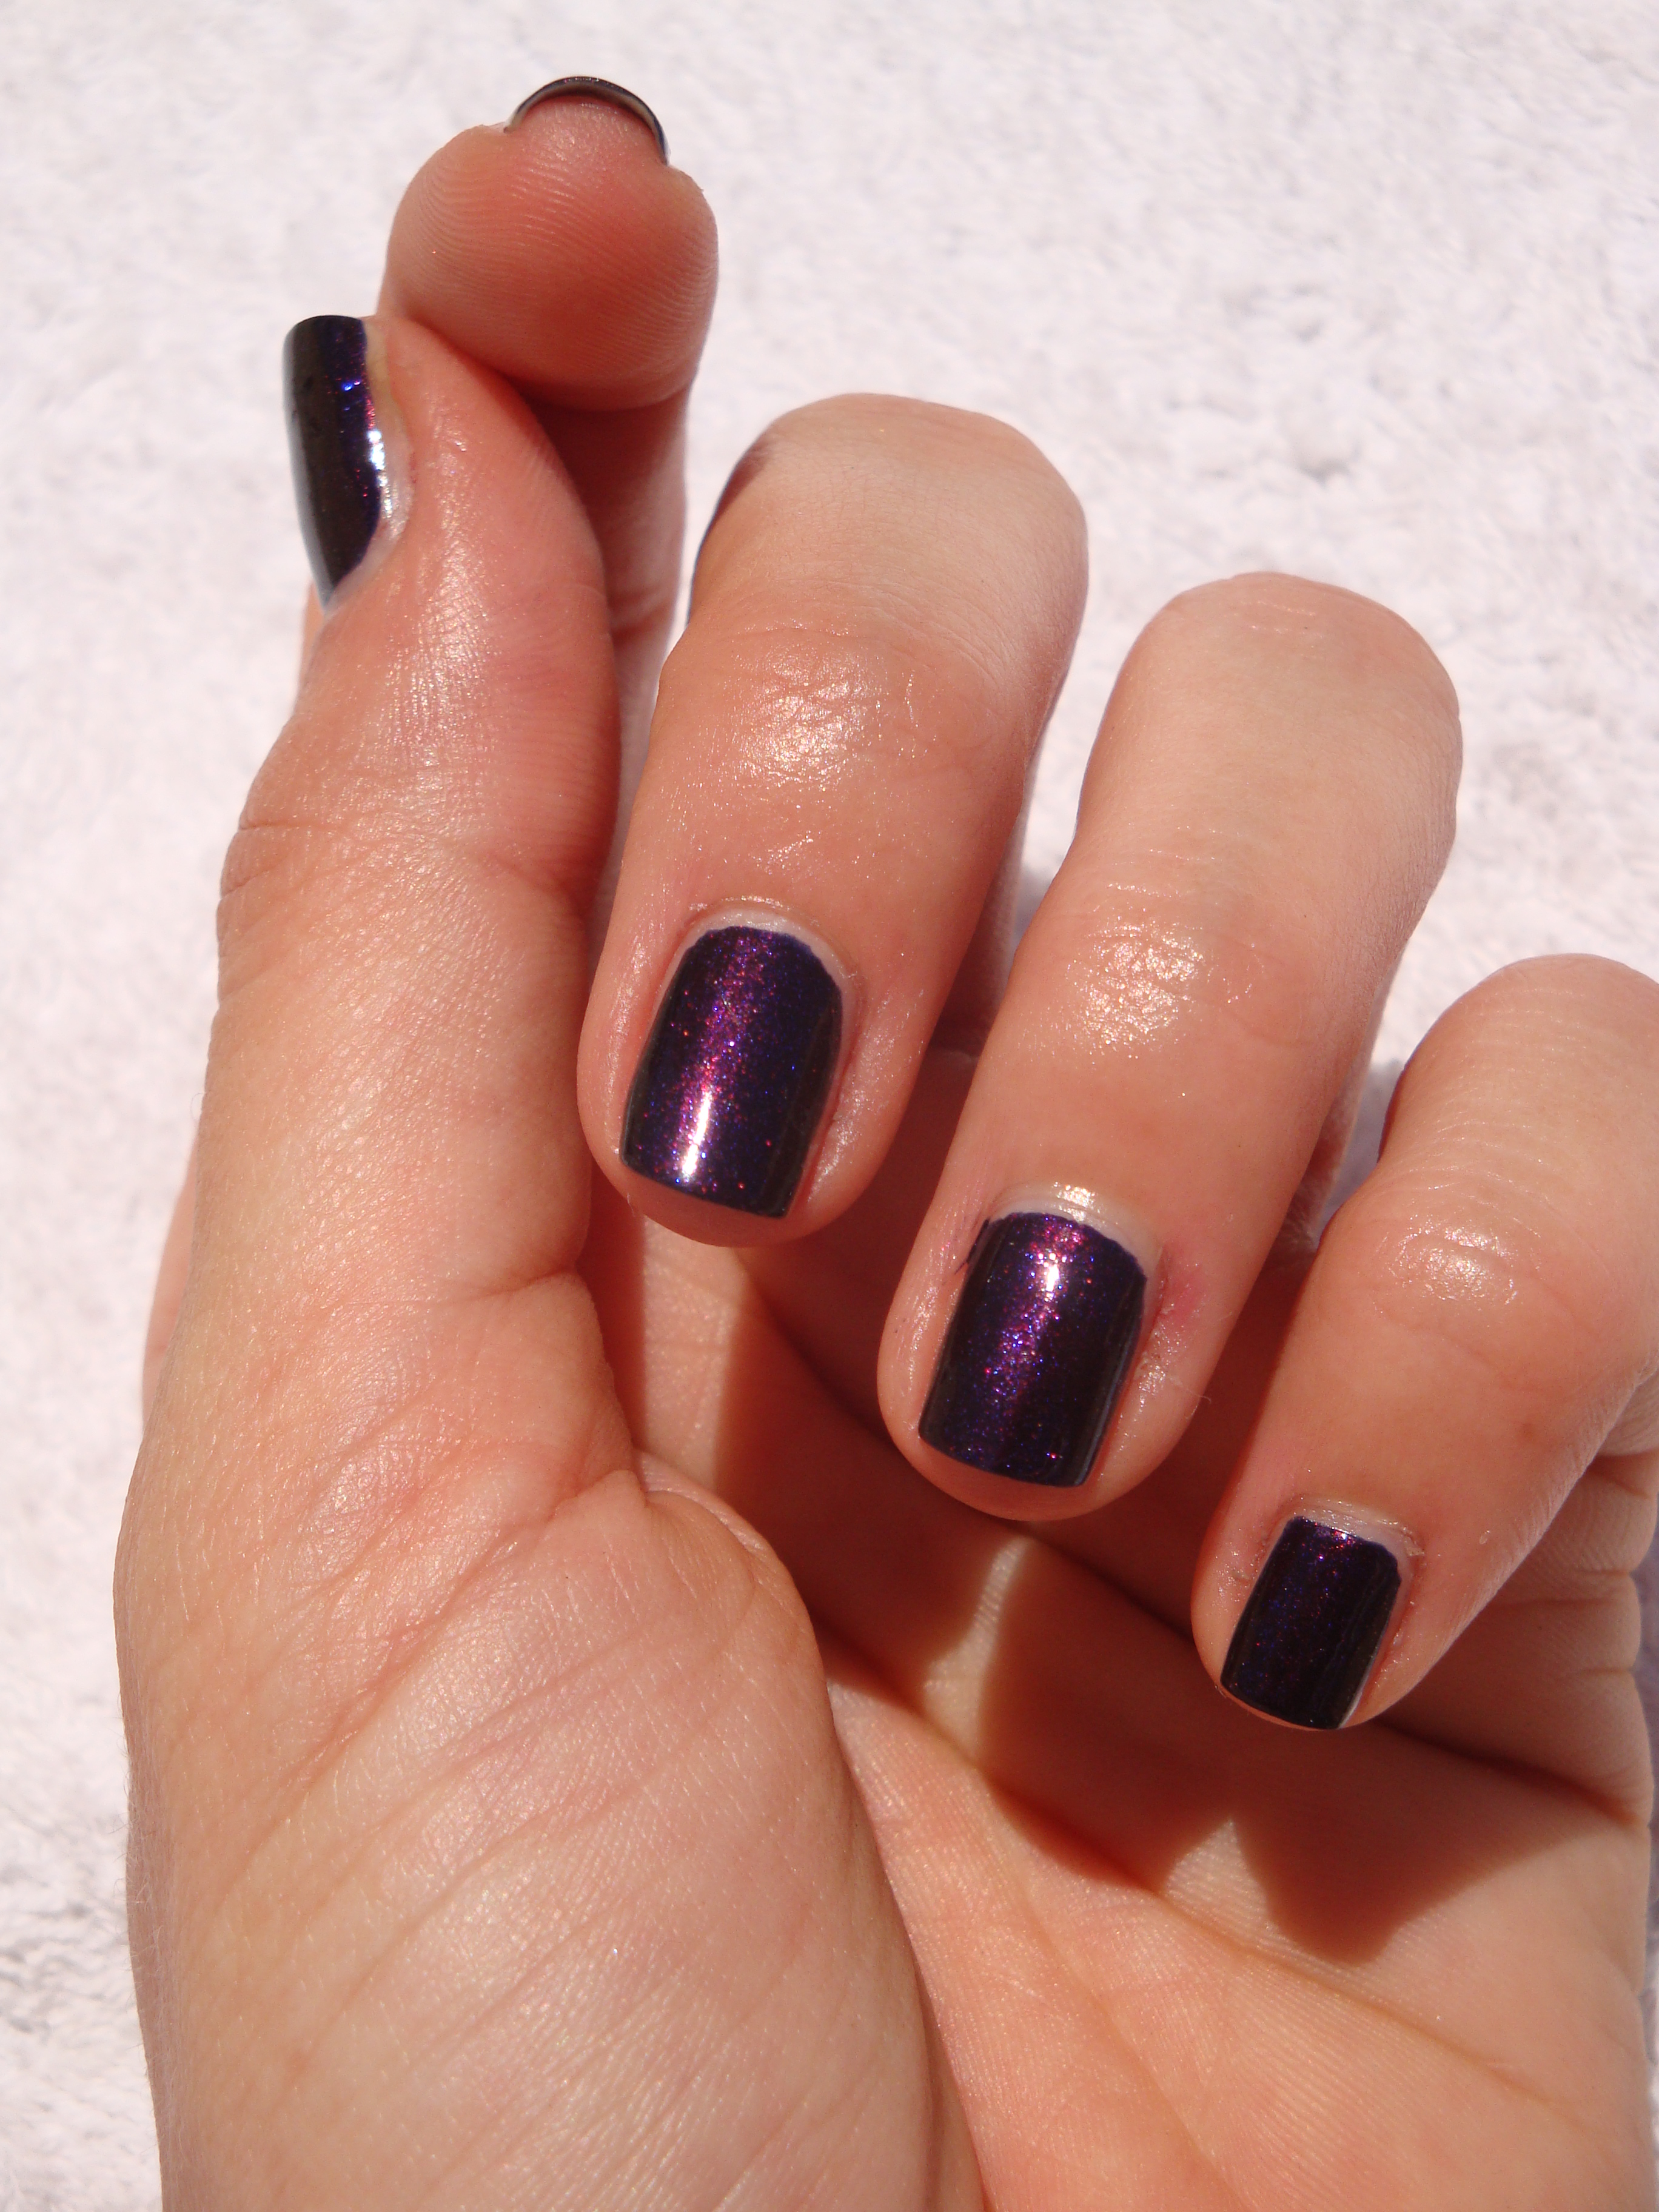 Chanel limite edition Taboo swatch